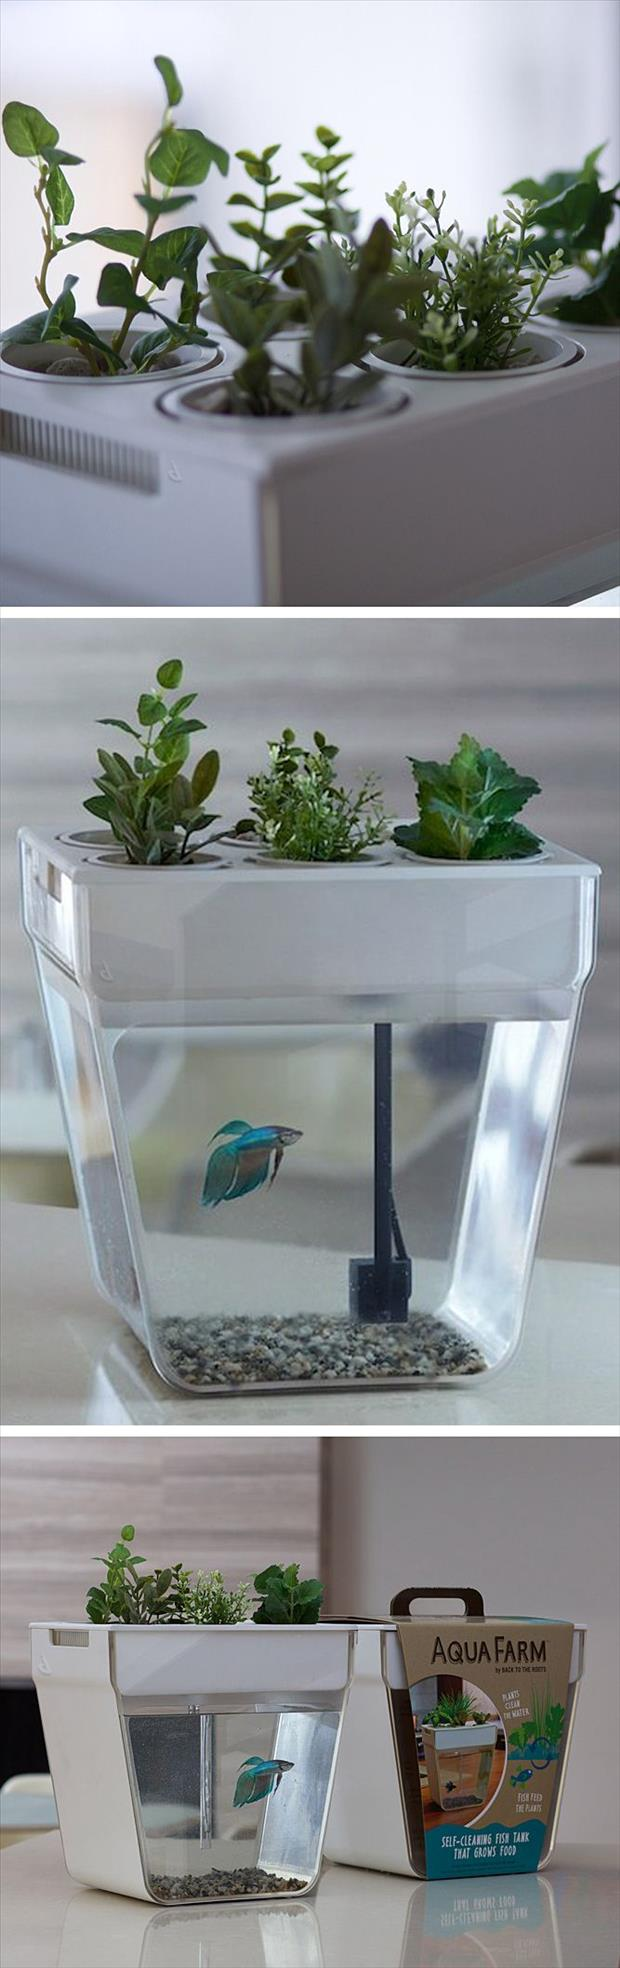 Top 40 DIY Projects Gadgets And Ideas For Your Home-homesthetics.net (49)